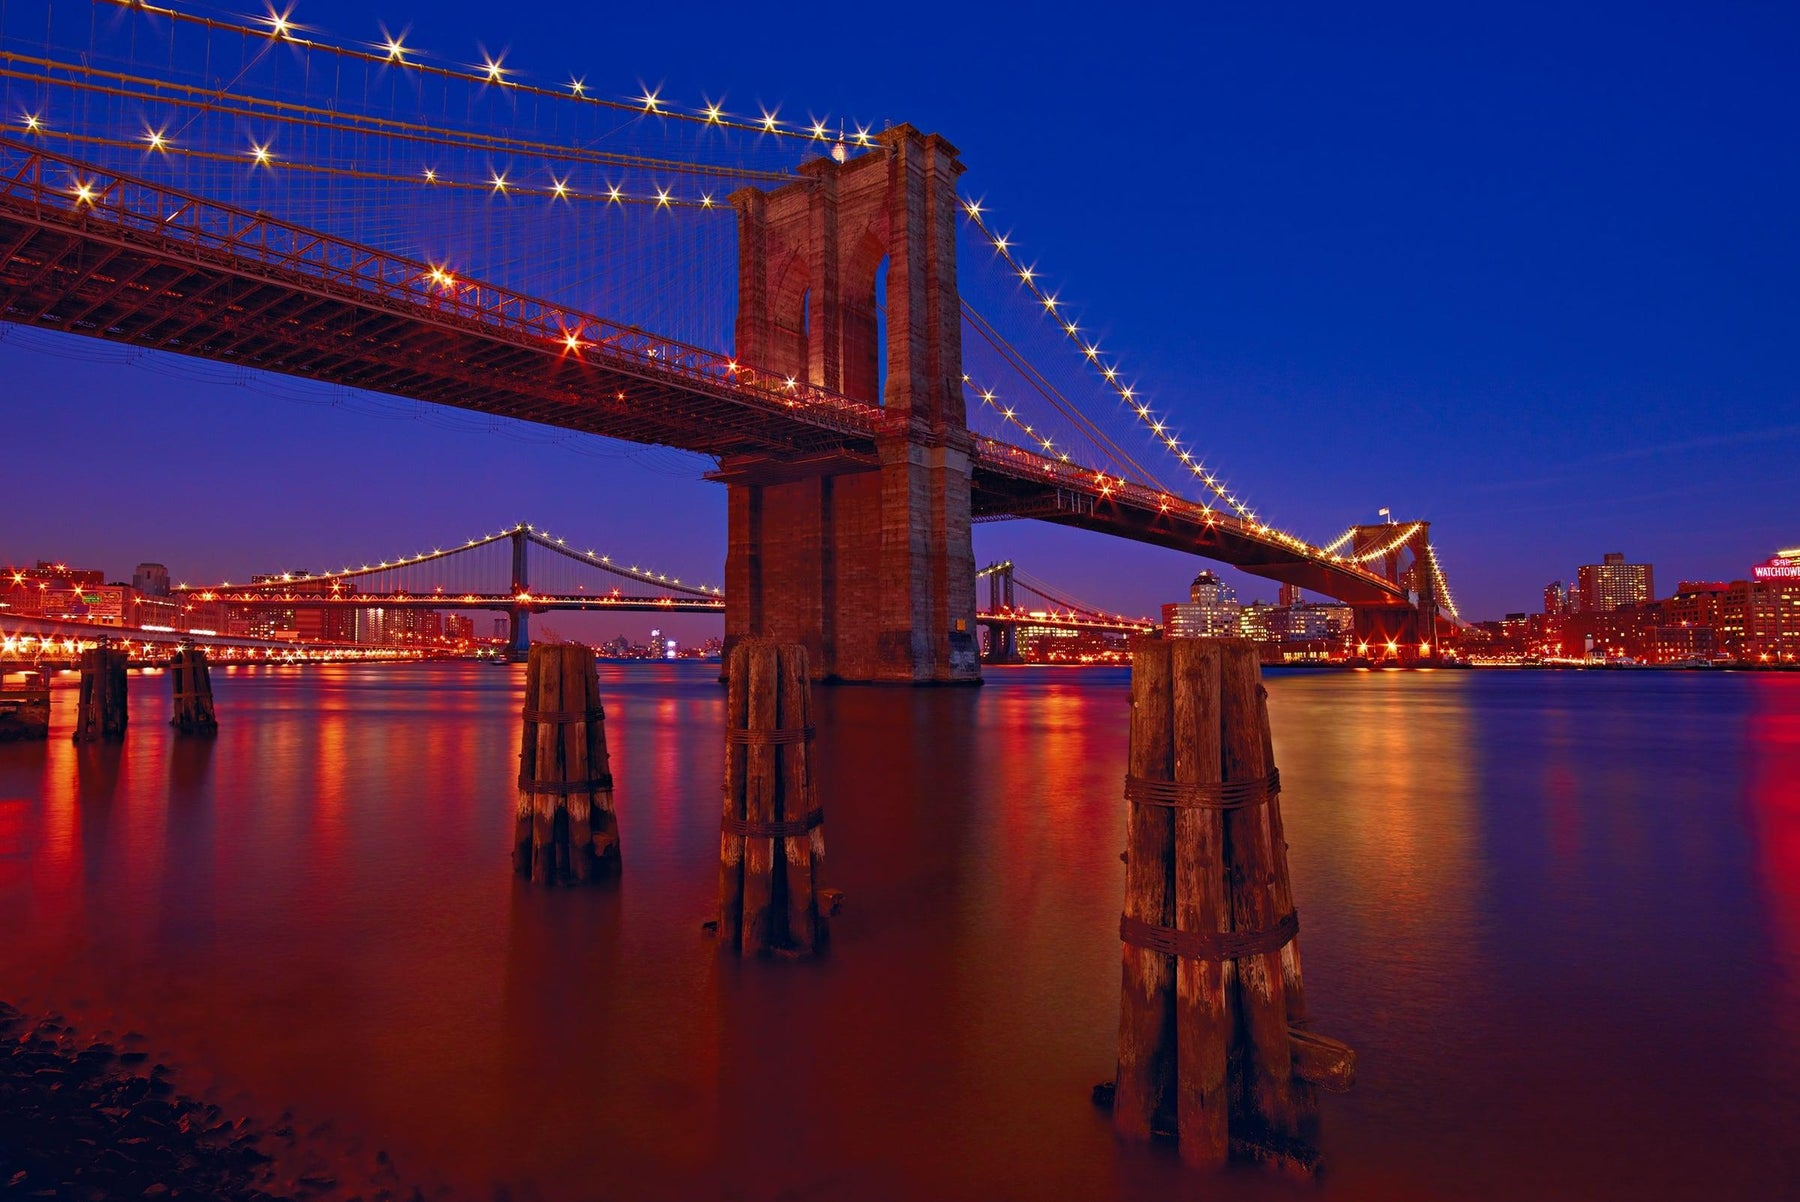 Brooklyn Bridge lit up at night from the waters edge with the Manhattan Bridge and New York City in the background